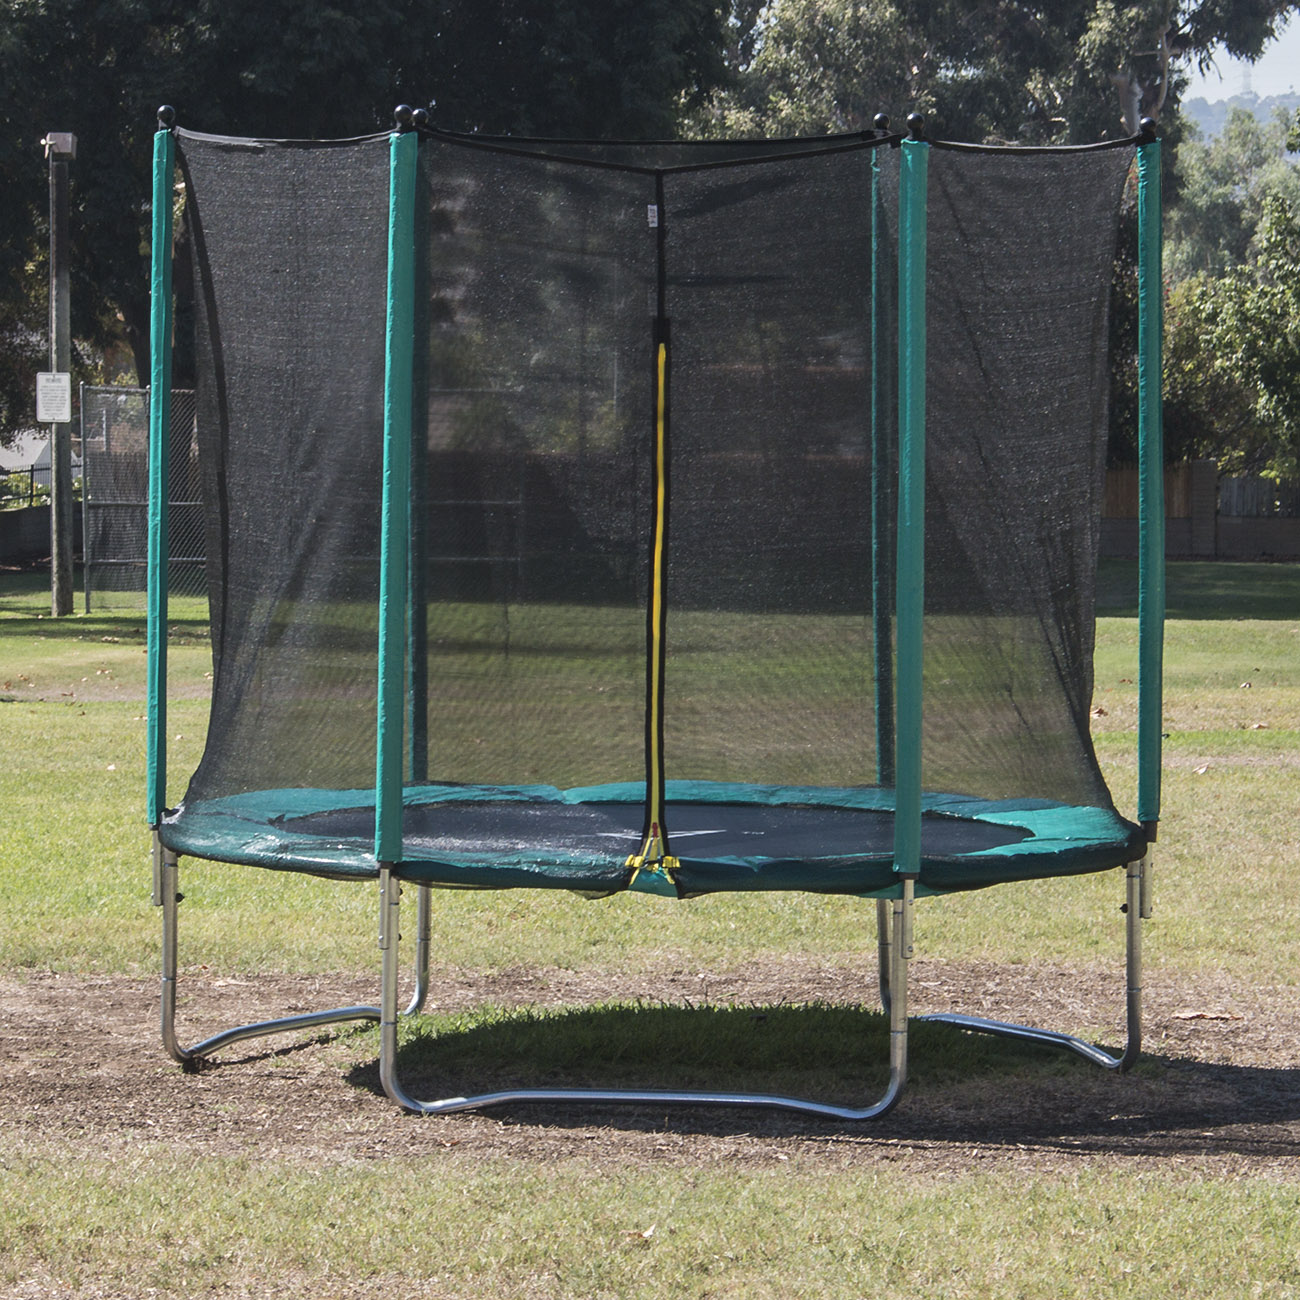 Kidwise Jumpfree 15 Ft Trampoline And Safety Enclosure: 15 FT Trampoline Combo Bounce Jump Safety Enclosure Net